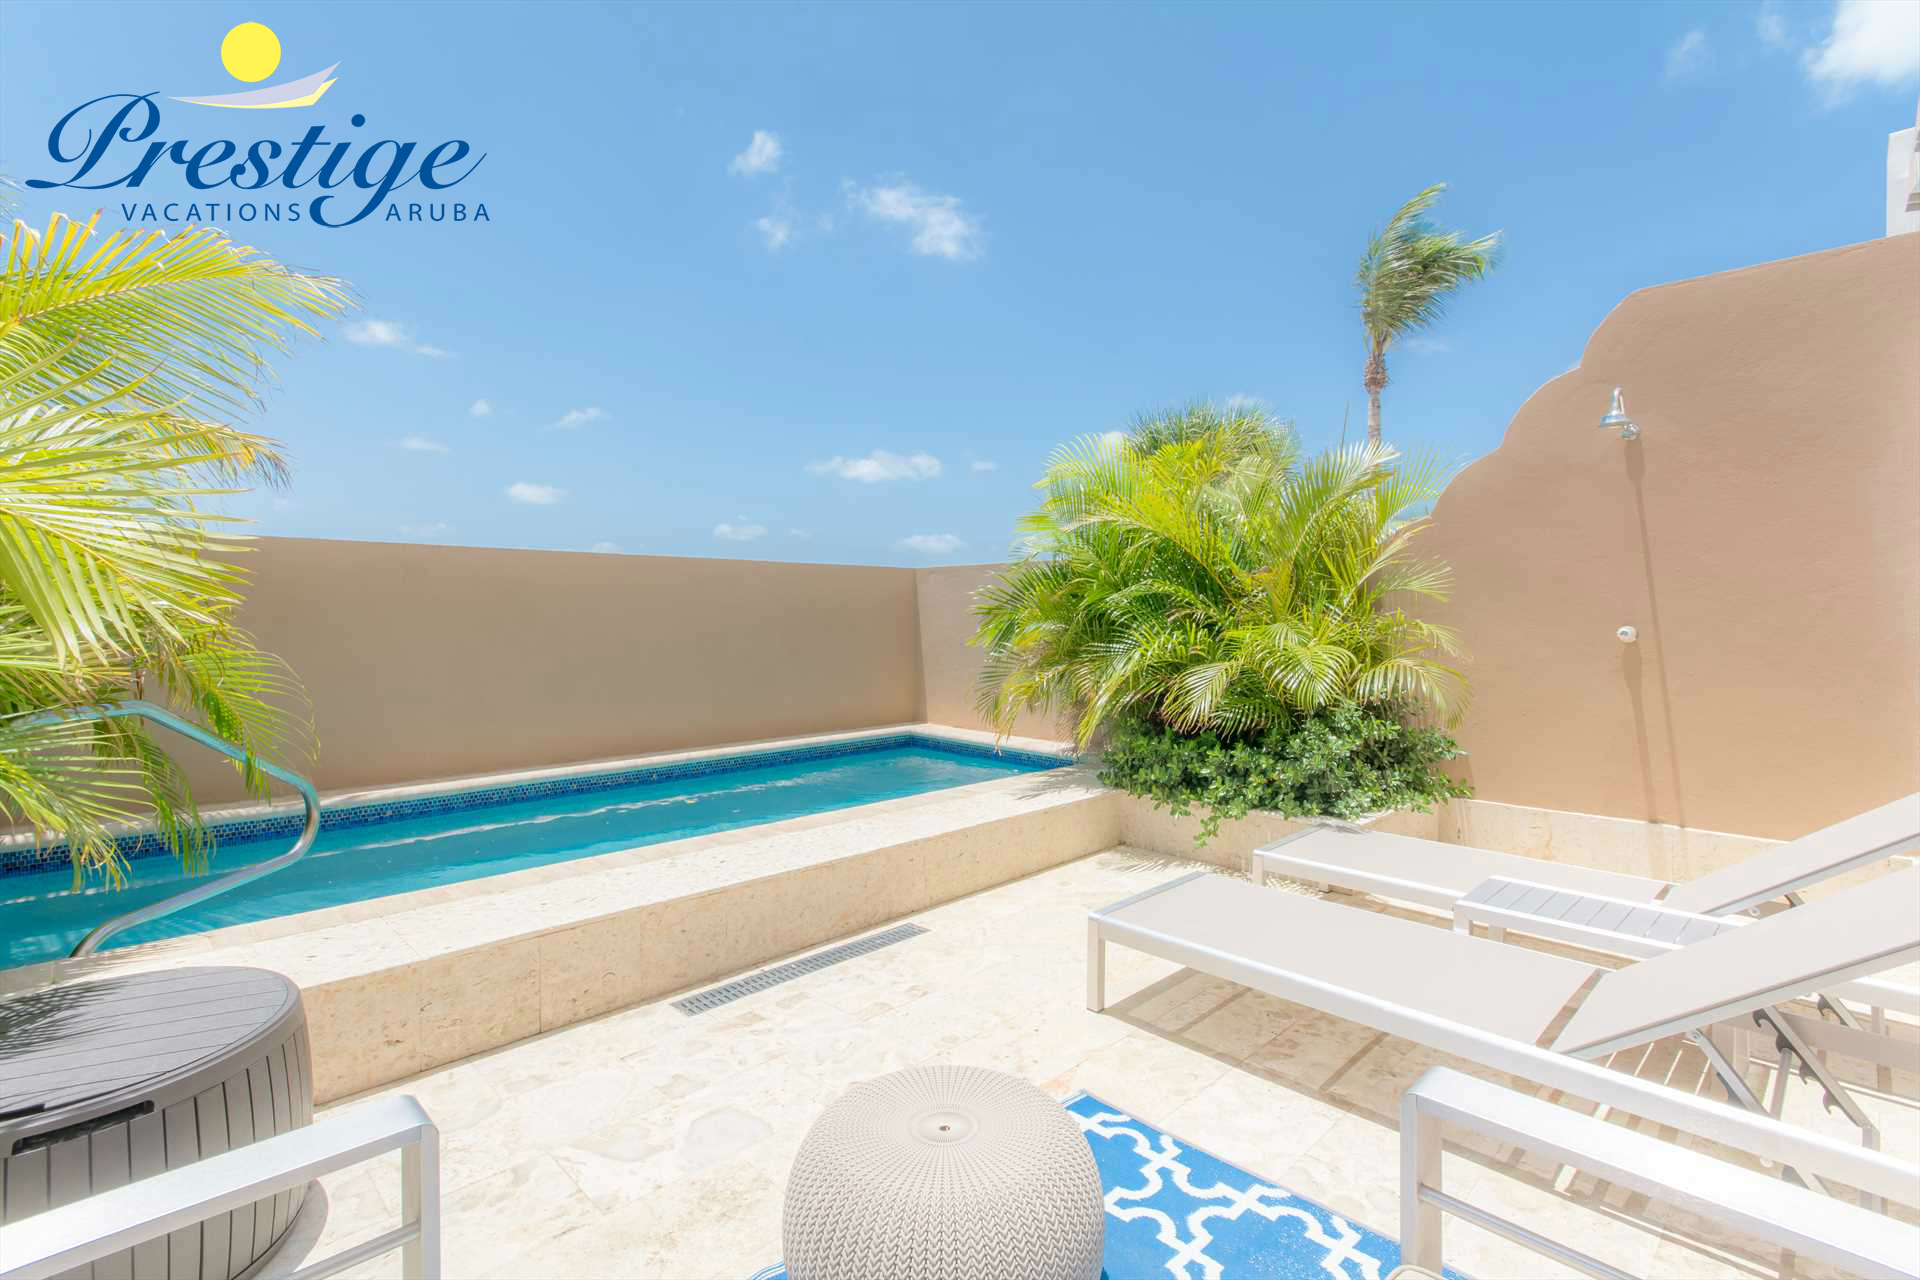 Back patio with outdoor seating area and 2-chaise lounges to relax by the pool